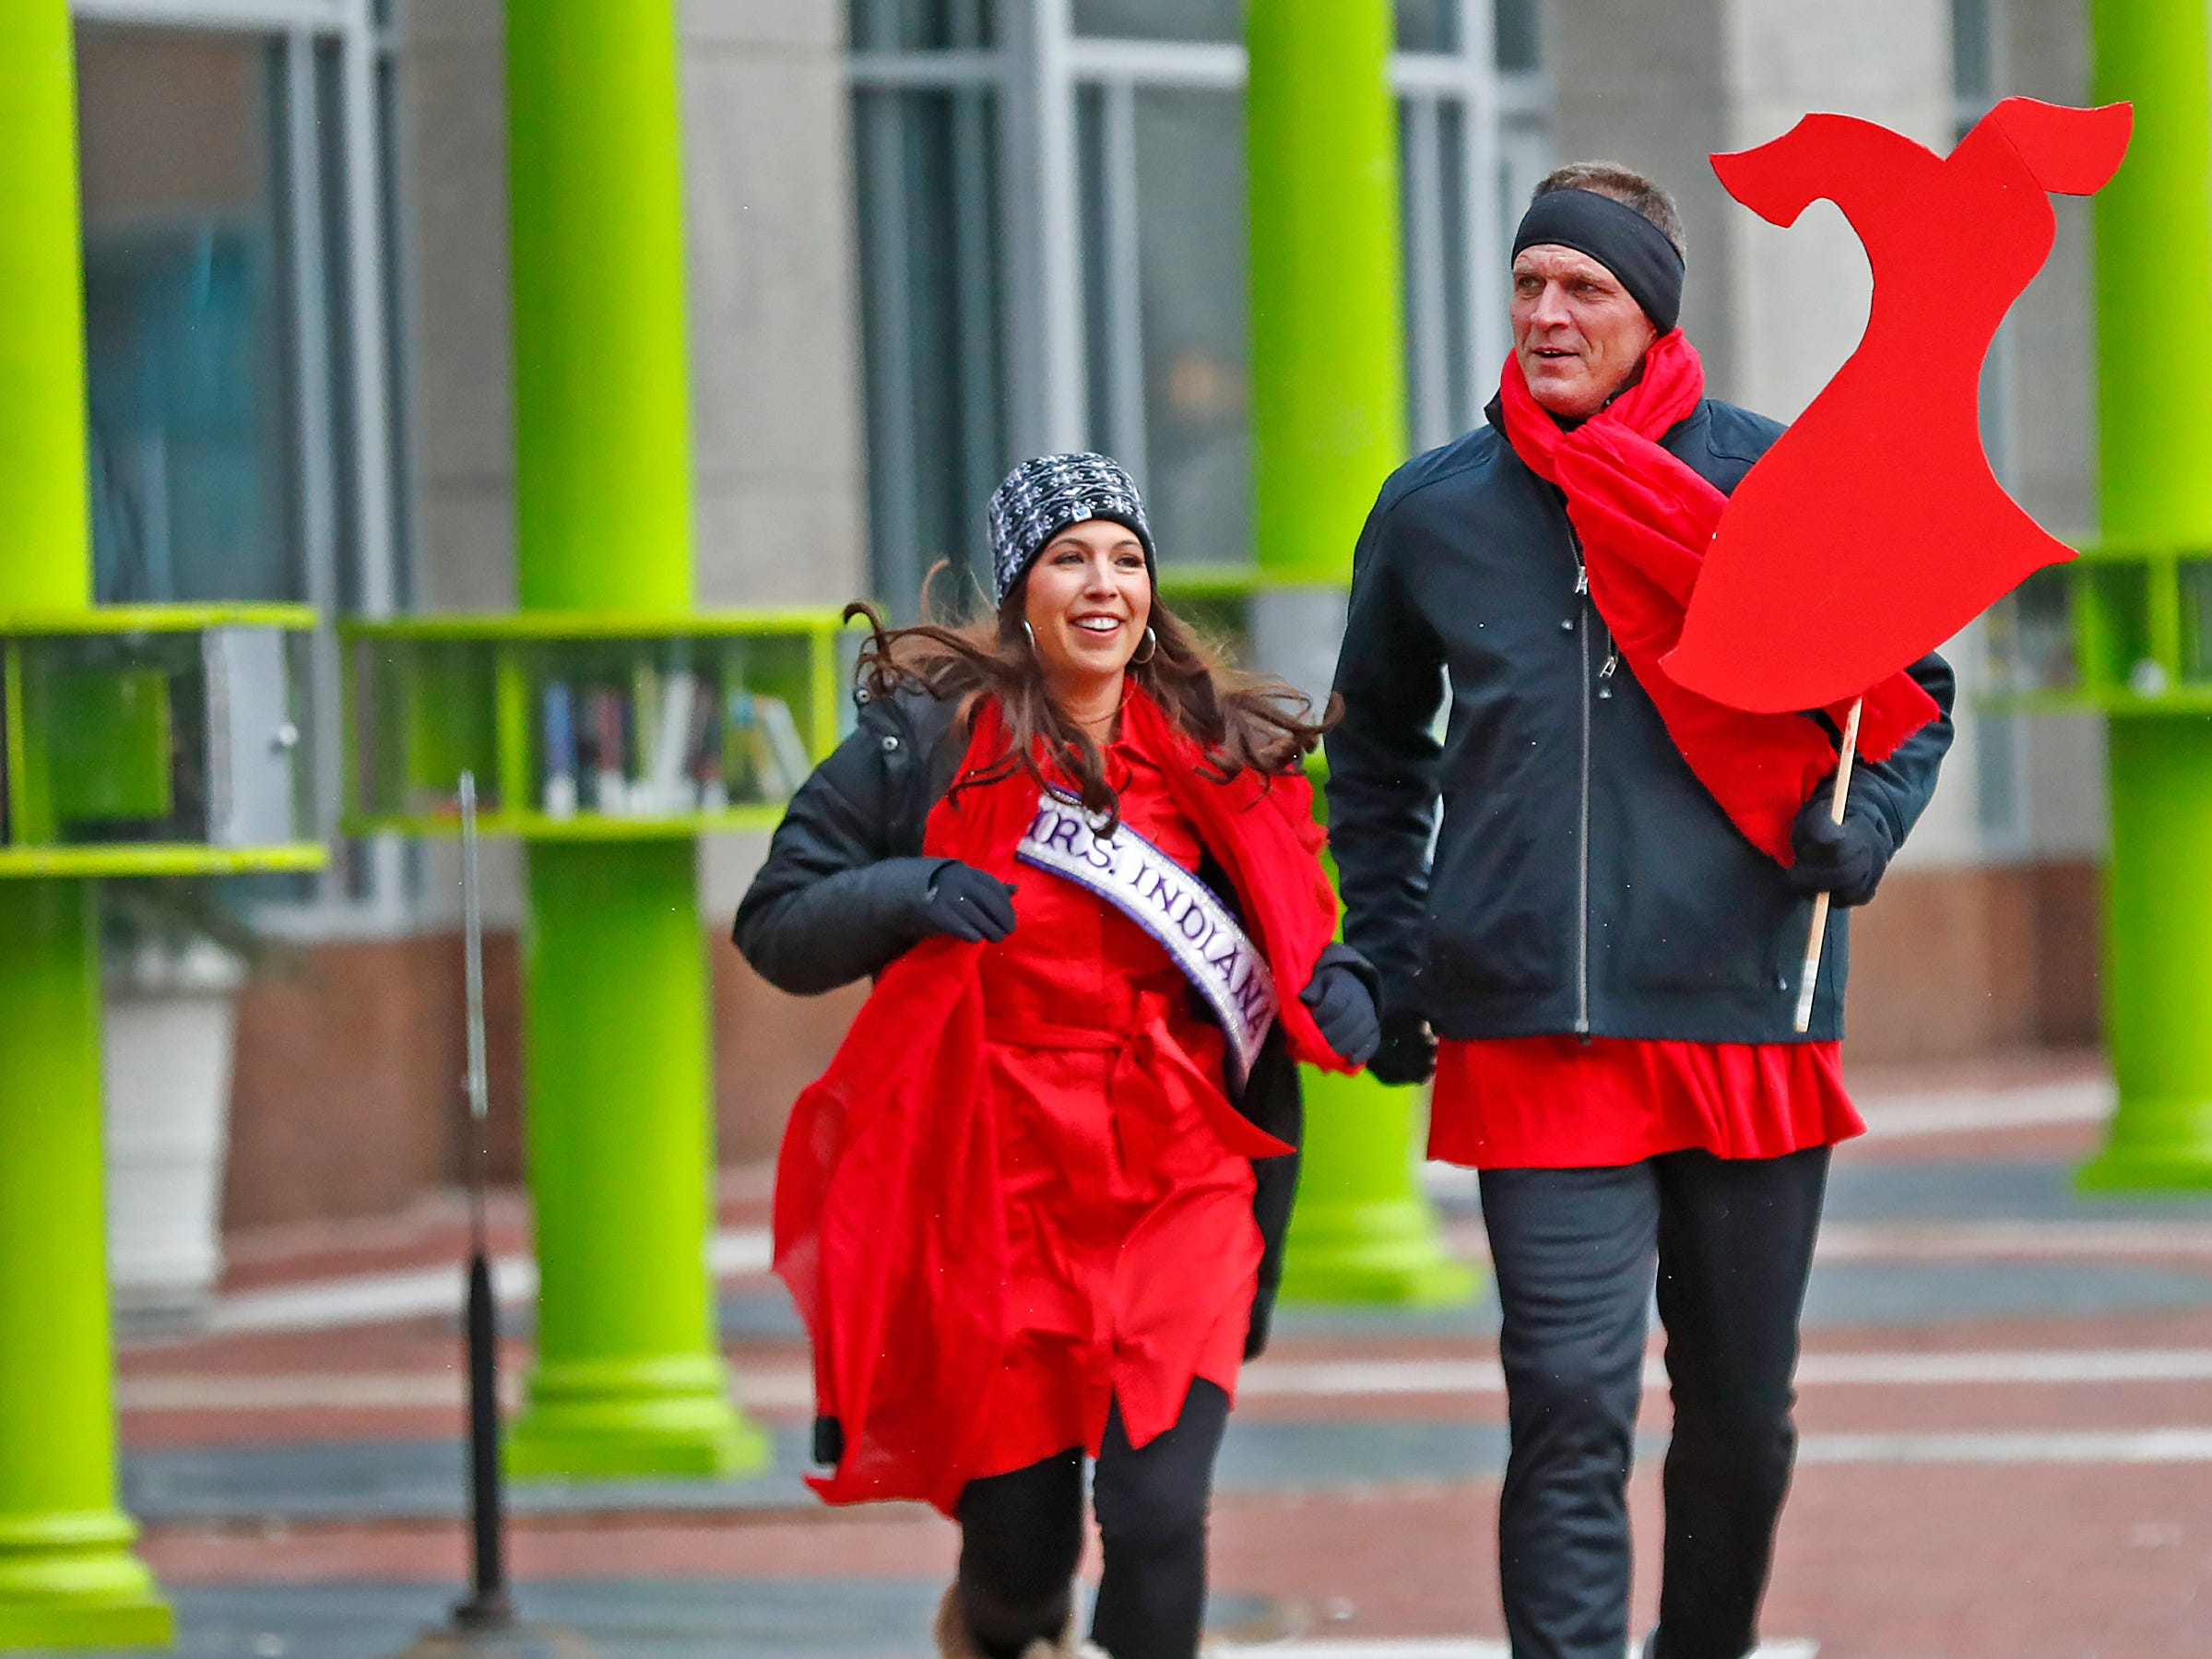 Mrs. Indiana International Lauren Hughes, left, and her husband Chris Hughes join others as they walk around Monument Circle for the Red Dress Dash, Friday, Feb. 8, 2019.  The American Heart Association put on the seventh annual event to support women's heart health.  The event raises awareness for the American Heart Association's Go Red For Women movement.  Heart disease is the leading cause of death among women.